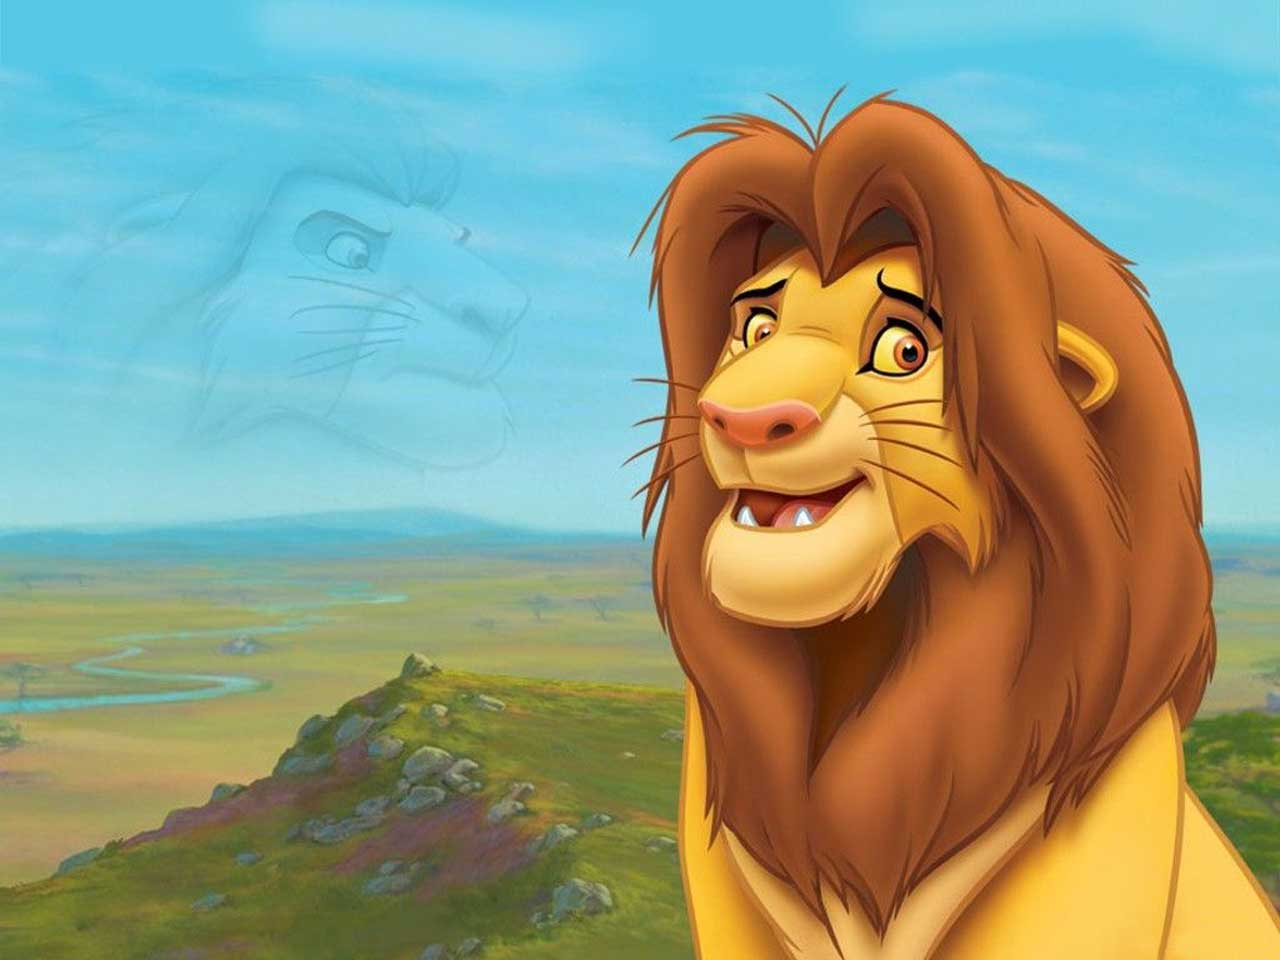 Cartoon Characters Lion King : Cartoon characters and animated movies simba